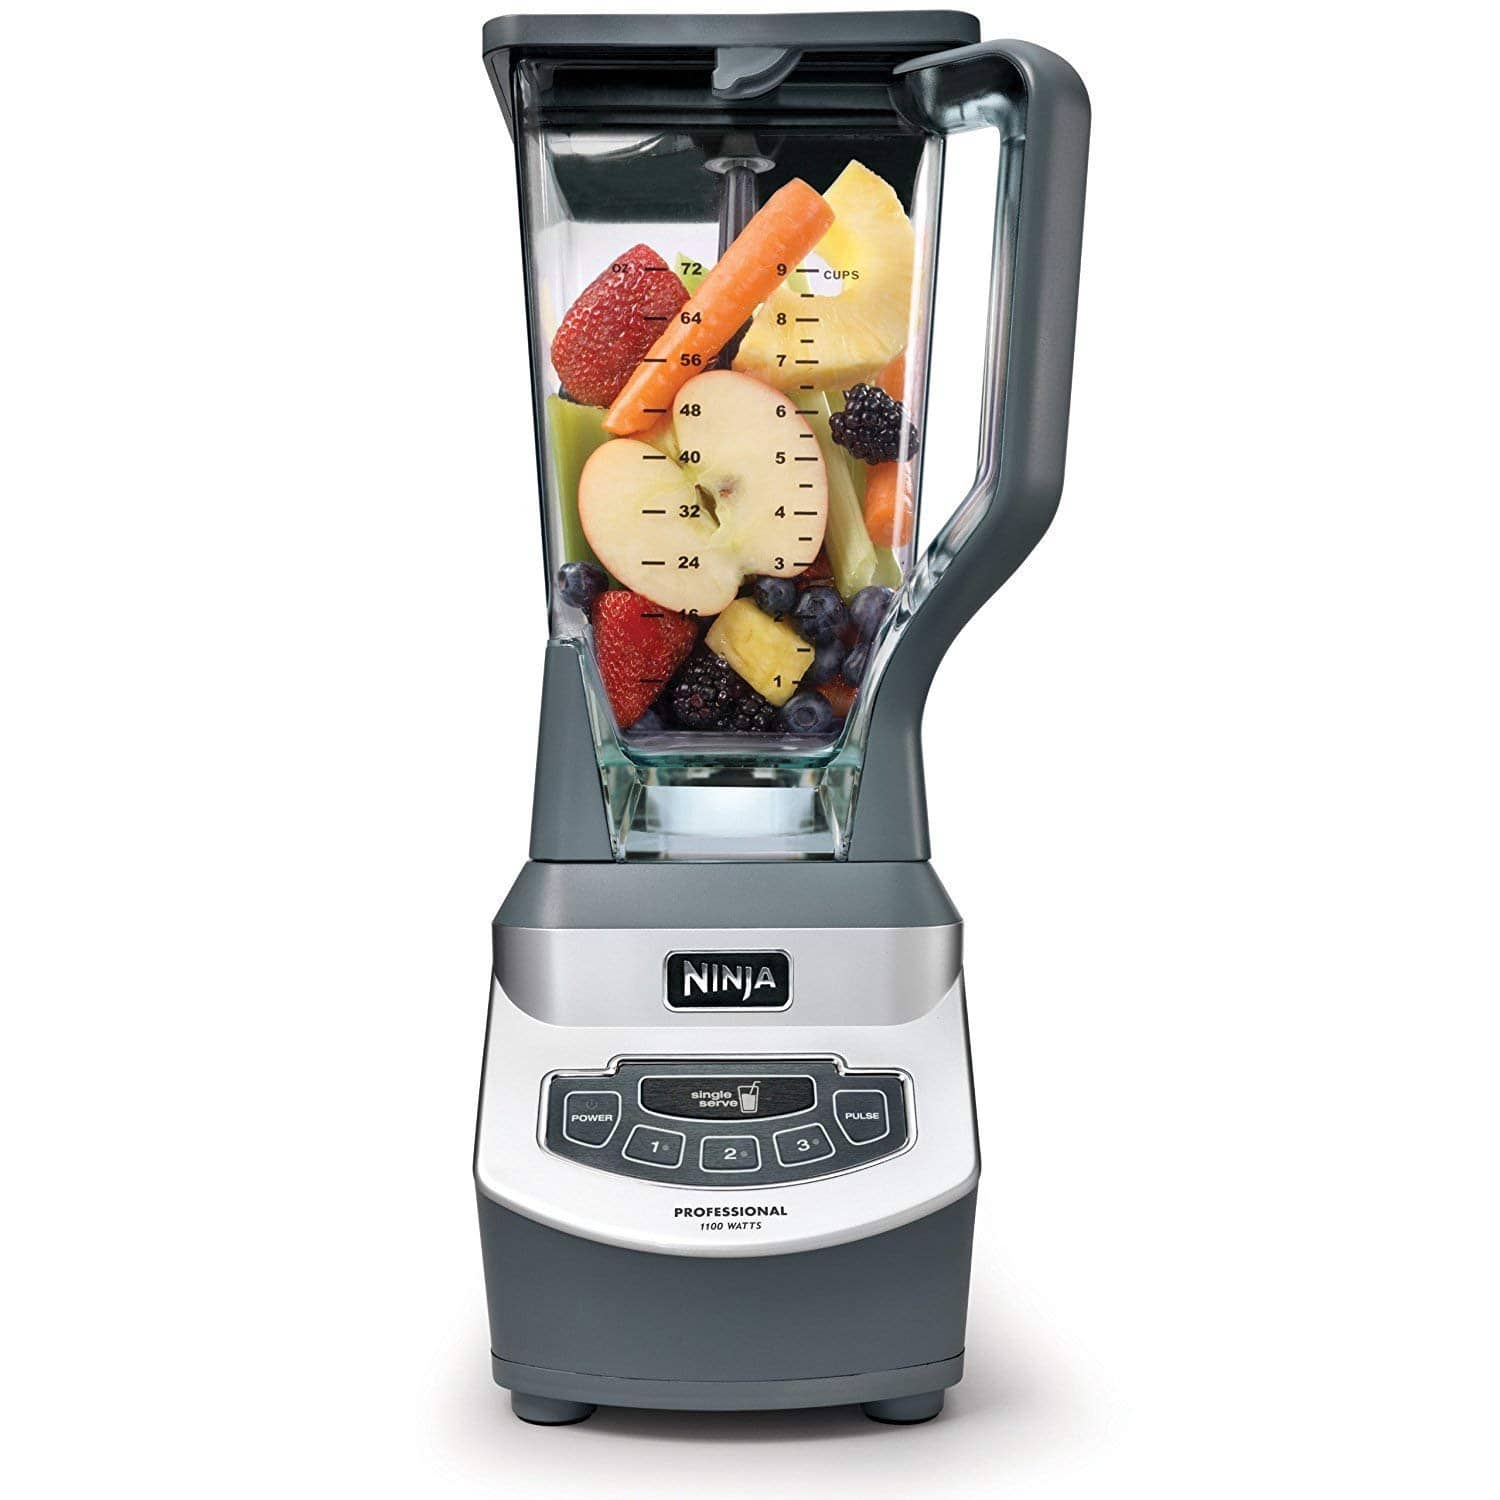 Ninja BL660 Professional Blender (Certified Refurbished) $69.99